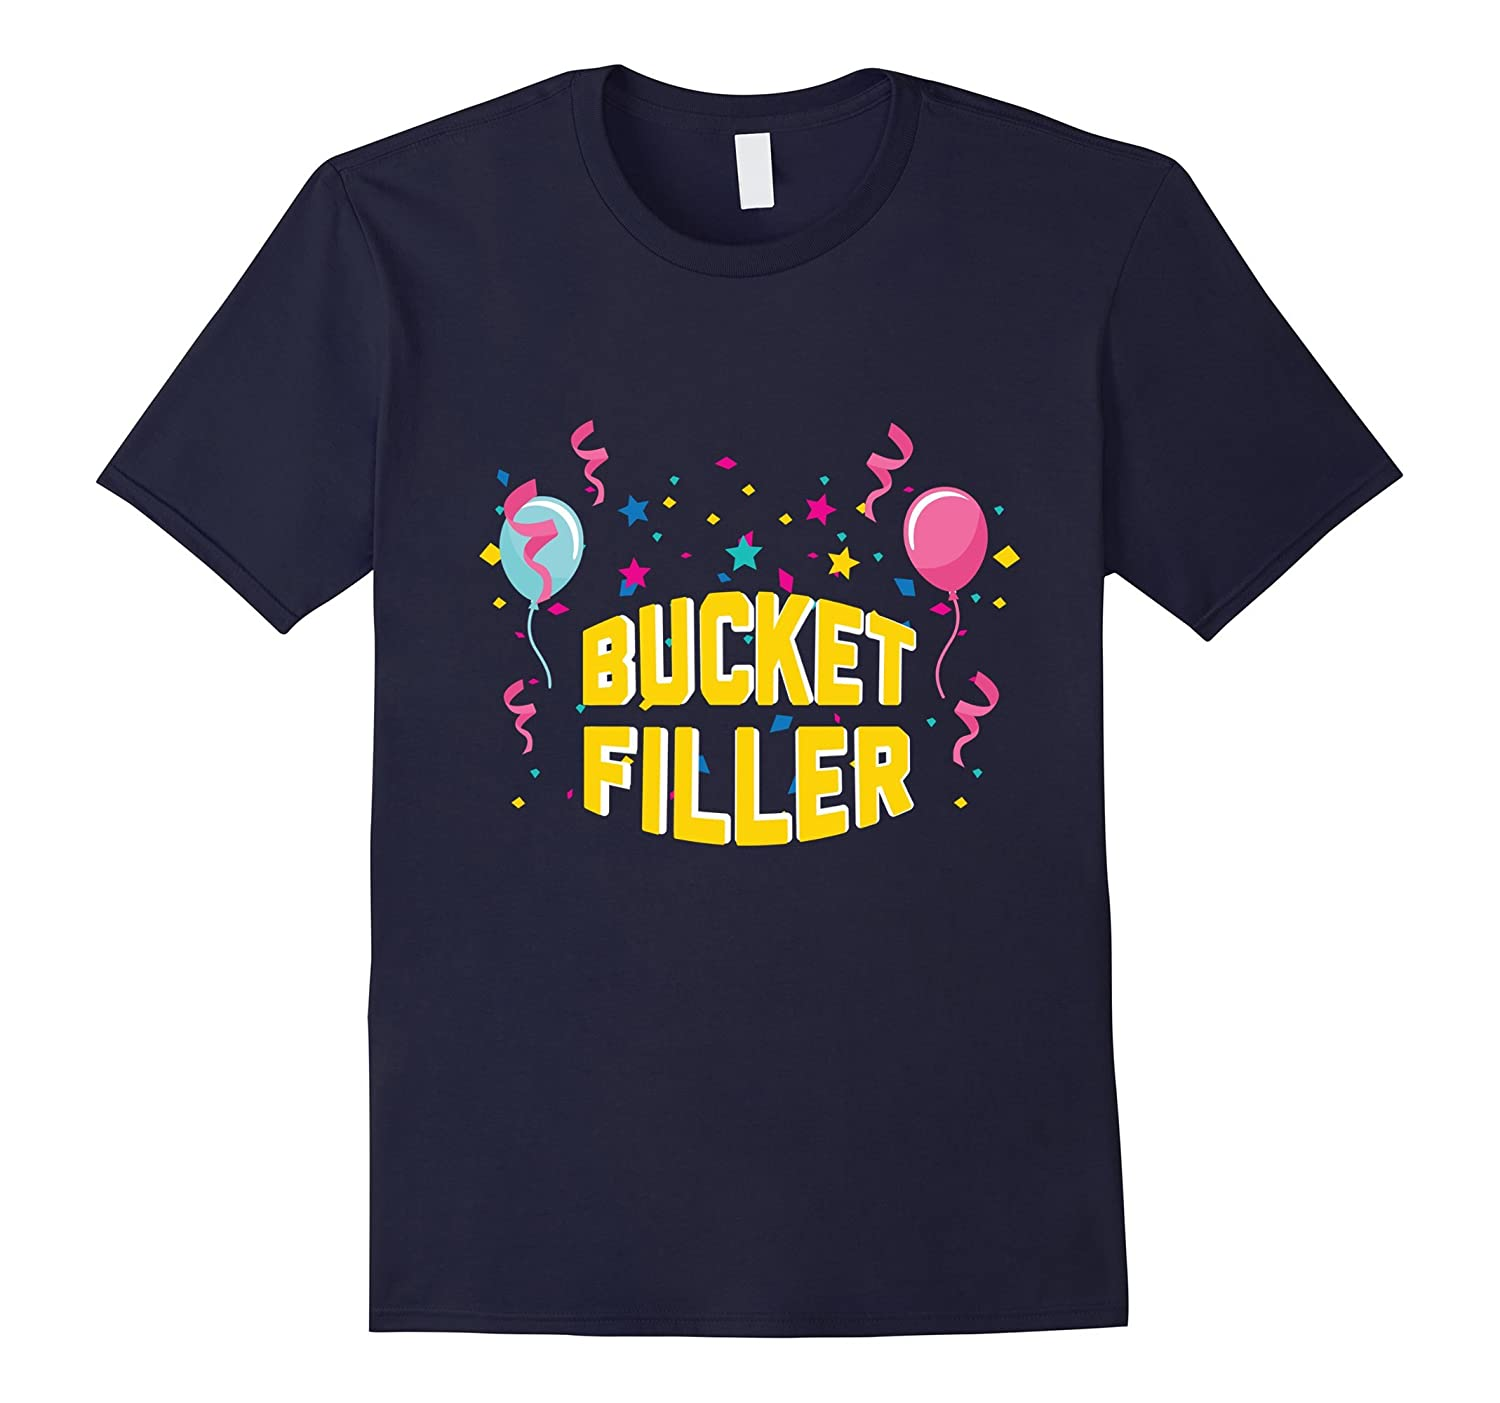 Bucket Filler Positive Encouragement Kindness T-Shirt